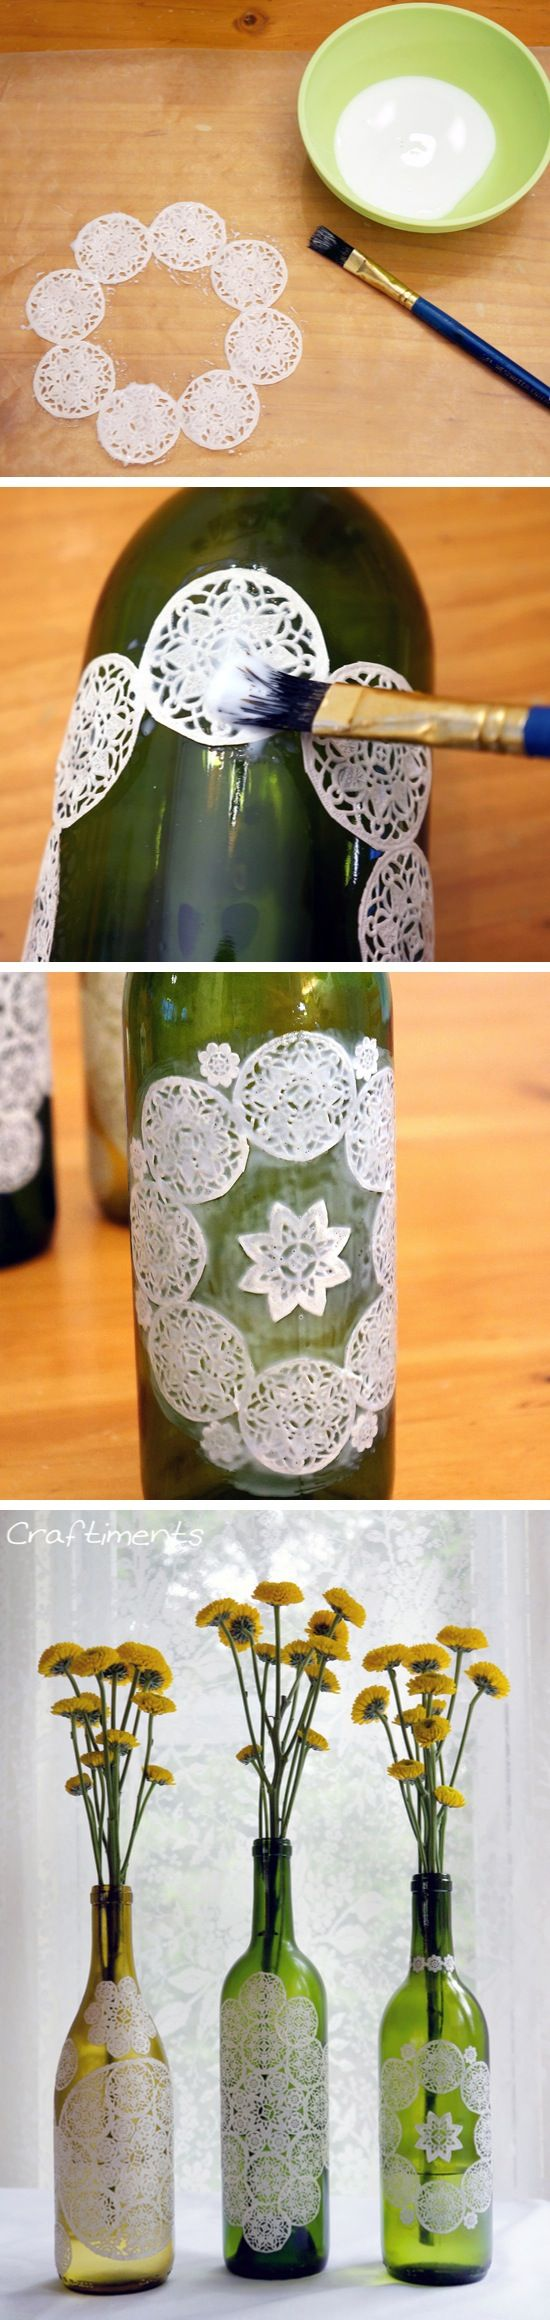 Decoupage en botellas